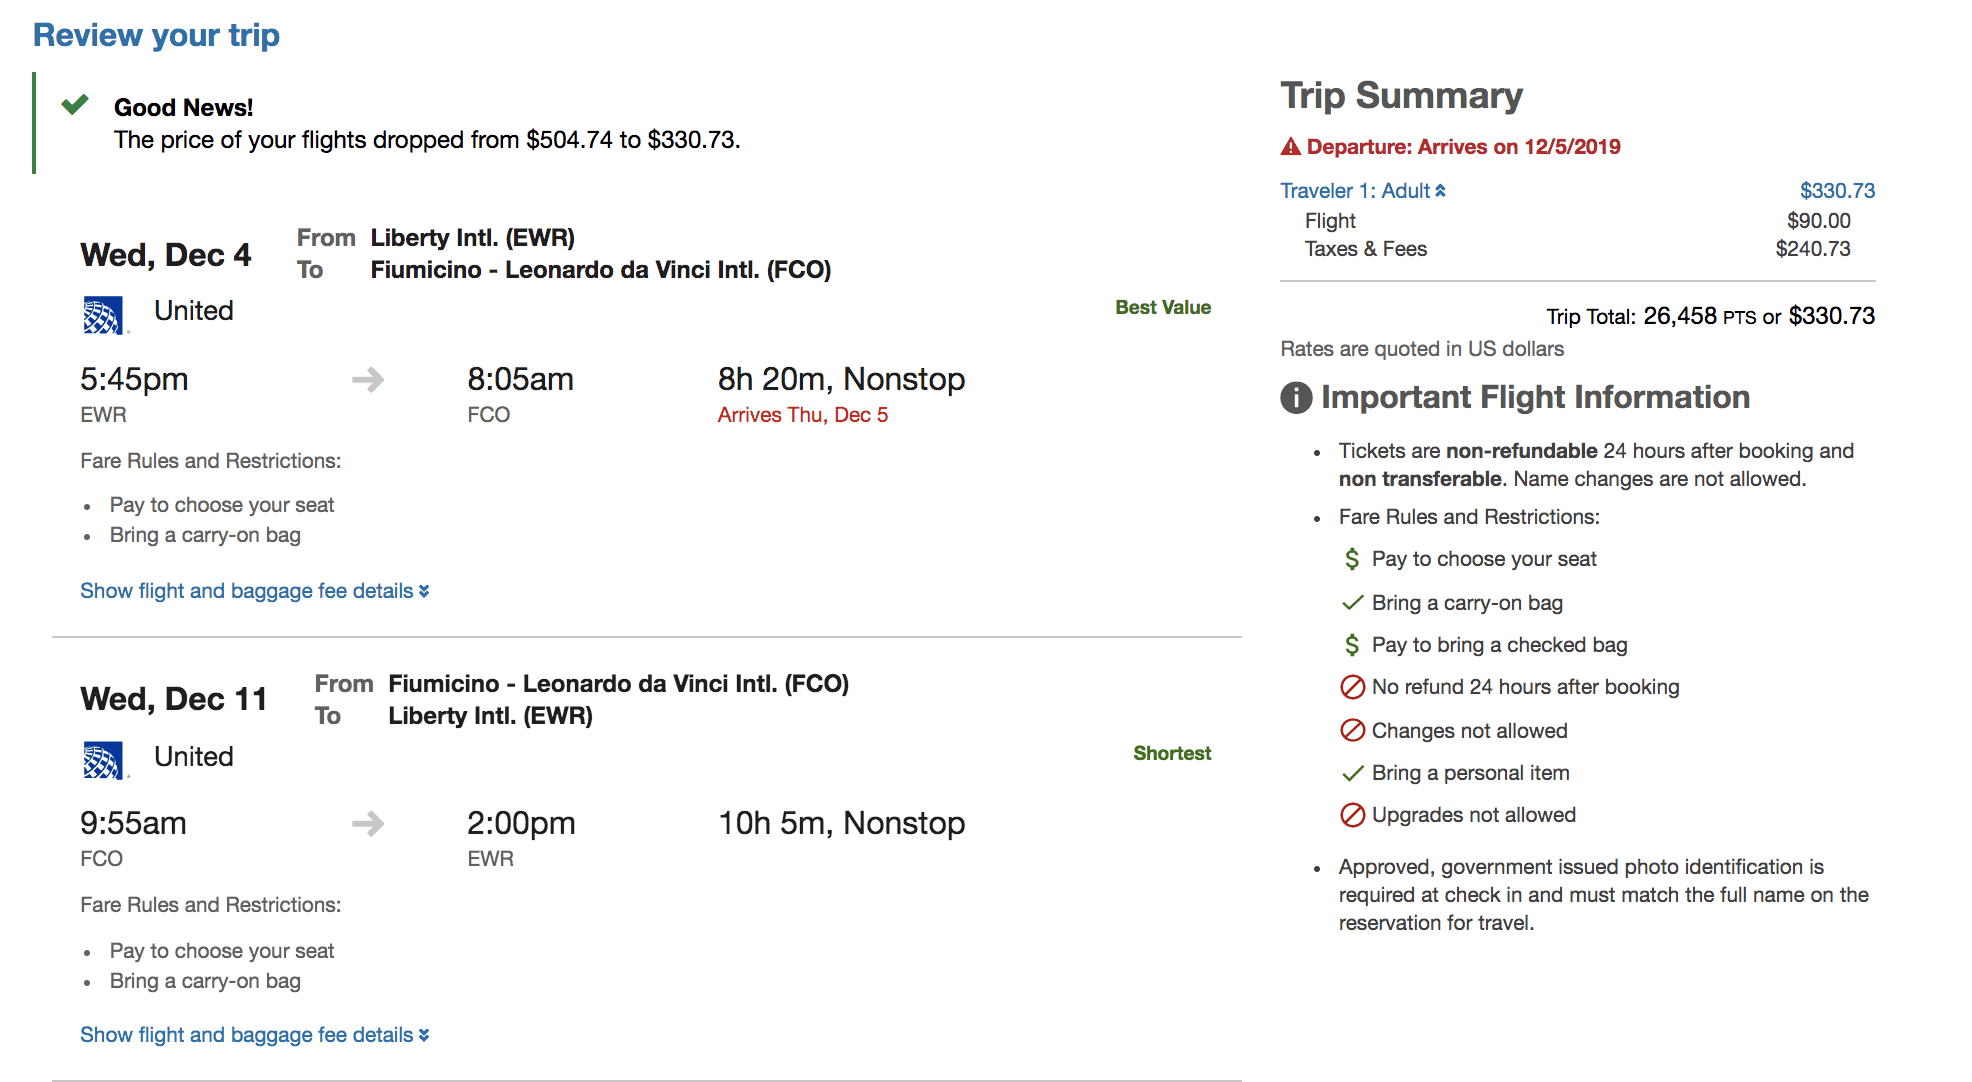 chase portal - ewr fco after price drop - Thrifty Traveler